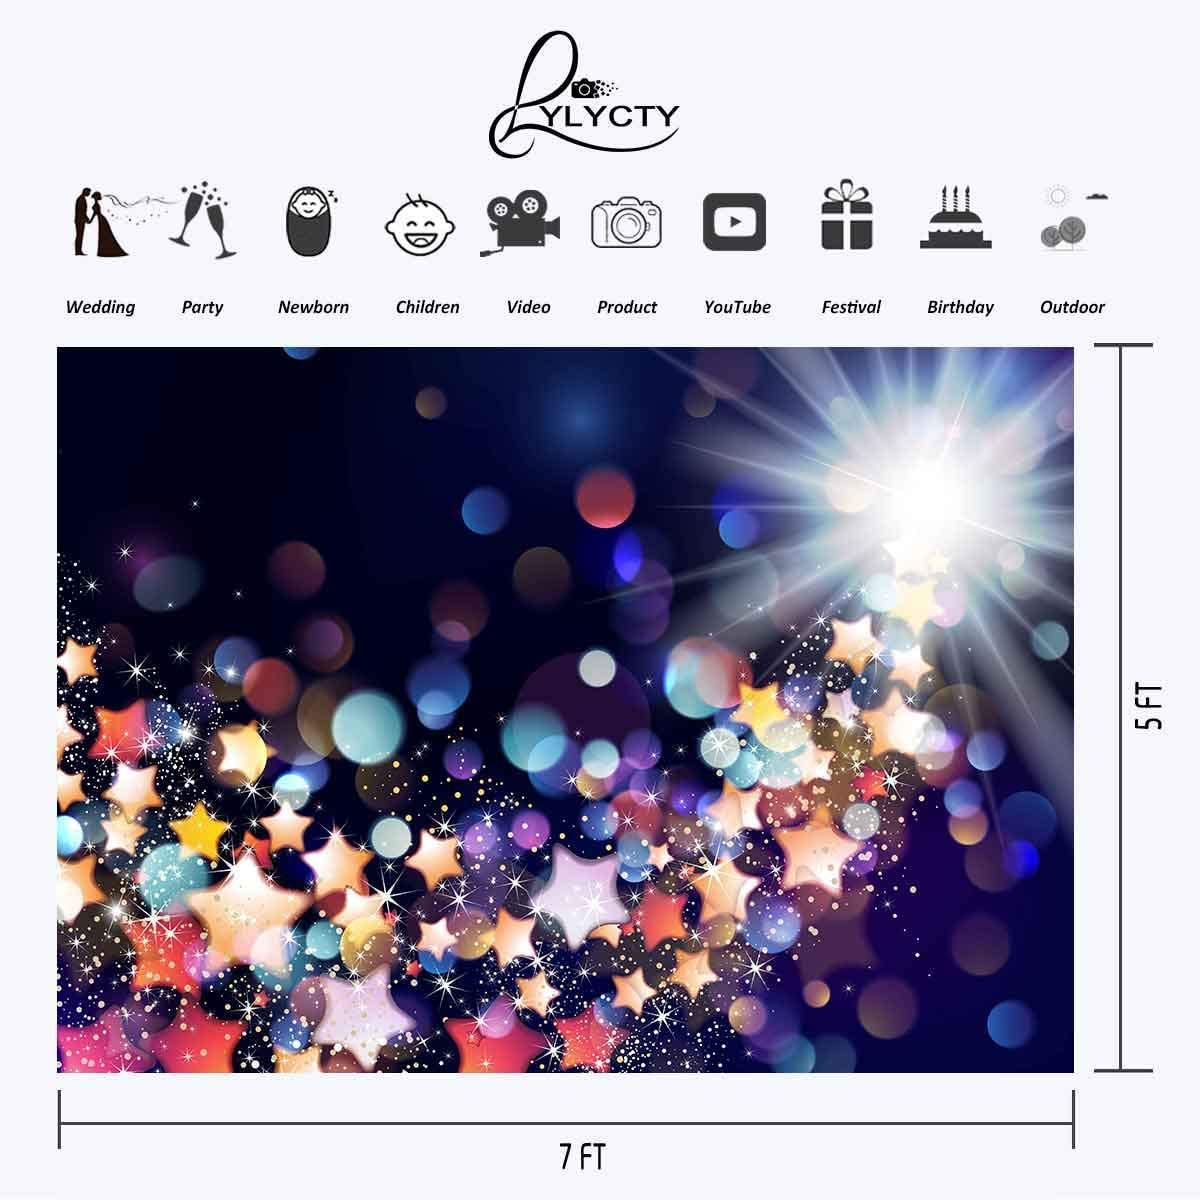 6x4ft Vinyl Abstract Colored Backdrop Festival Celebration Photography Background Customized Photo Shooting Props LYZY0288 for Party Decoration Birthday YouTube Videos School Photoshoot Photo Backgrou